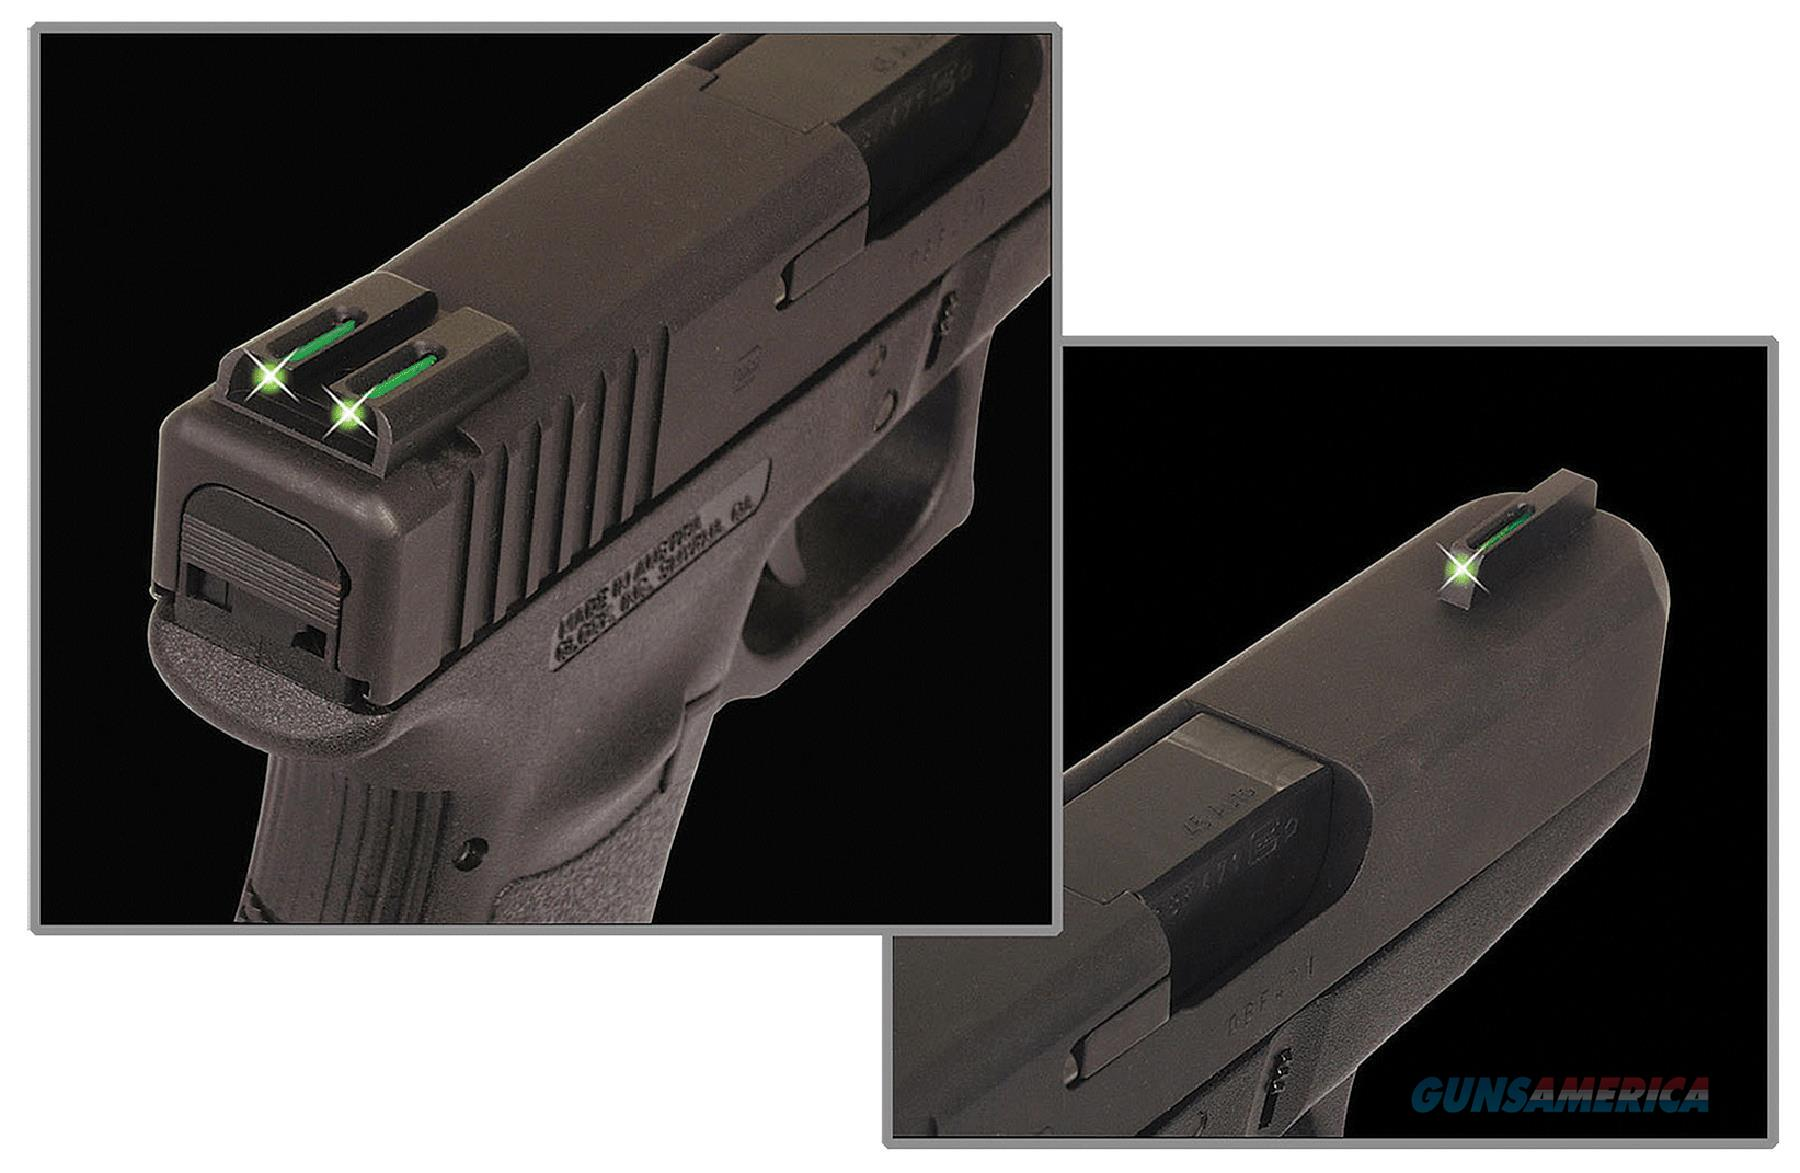 Truglo Tg131kty Brite-Site Tfo Kimber Tritium/Fiber Optic Green Front Yellow Rear Black TG131KTY  Non-Guns > Iron/Metal/Peep Sights